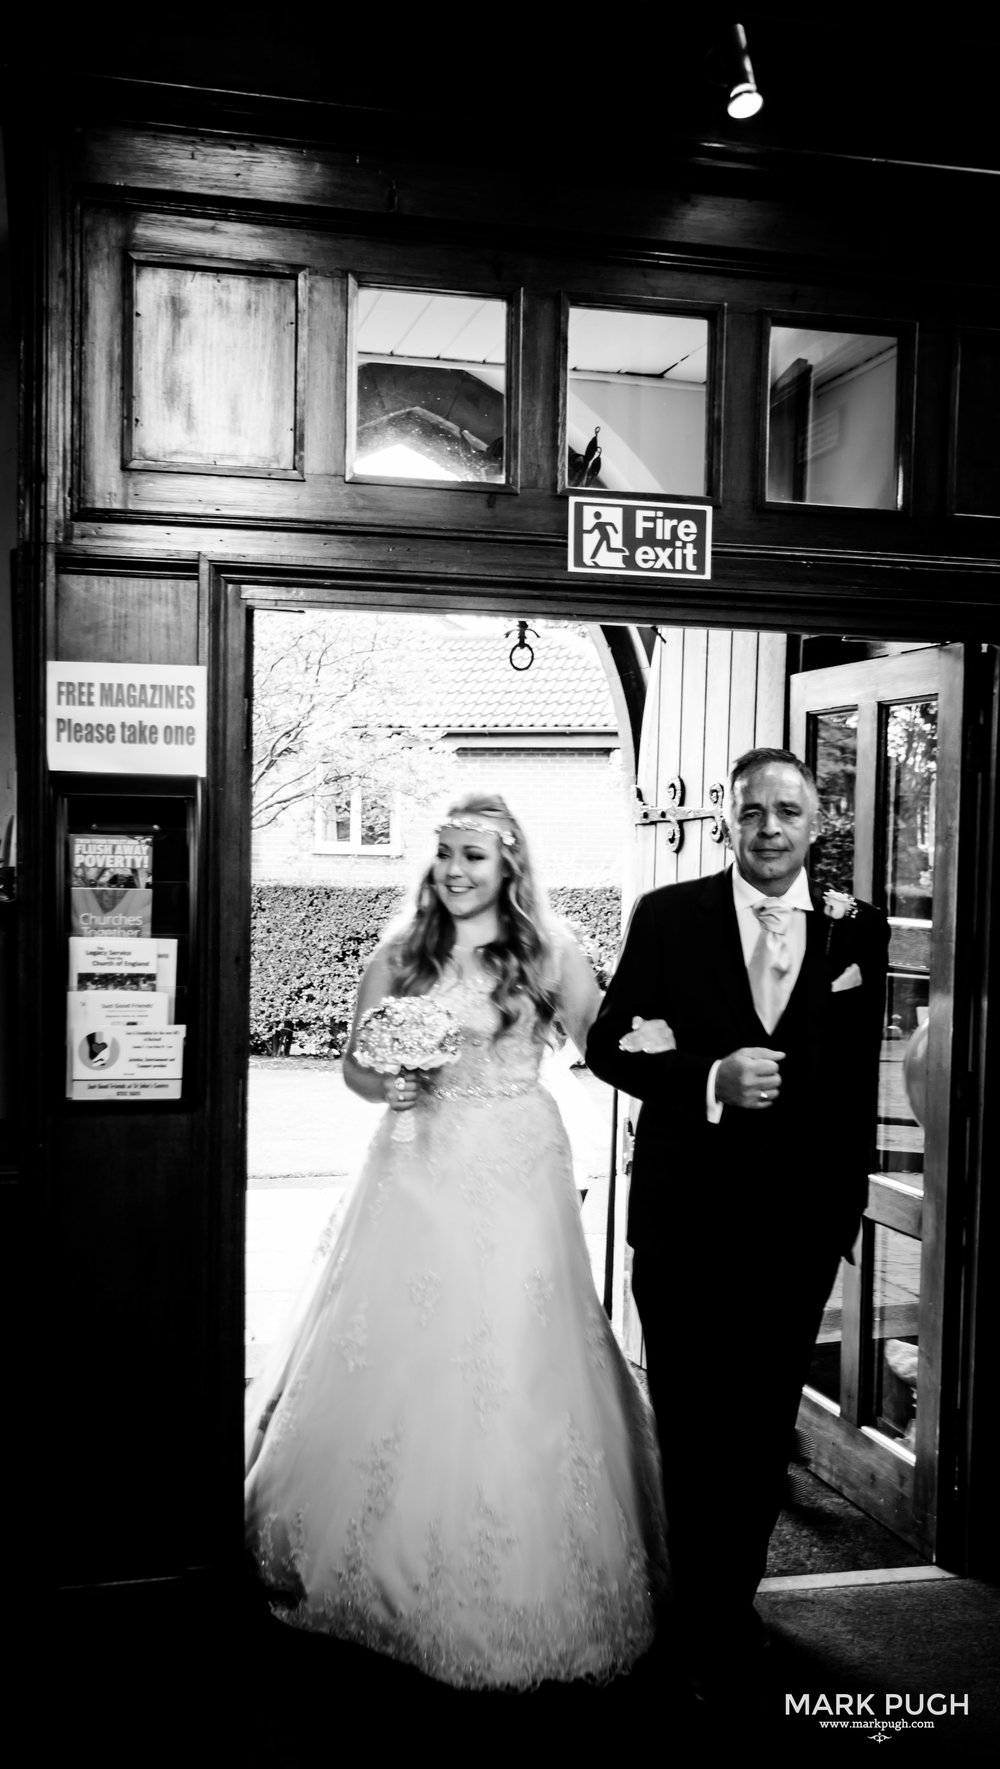 043 - Lucy and Tim - fineART wedding photography featuring the Goosedale Conference and Banqueting venue NG6 8UJ by www.markpugh.com Mark Pugh of www.mpmedia.co.uk_.JPG